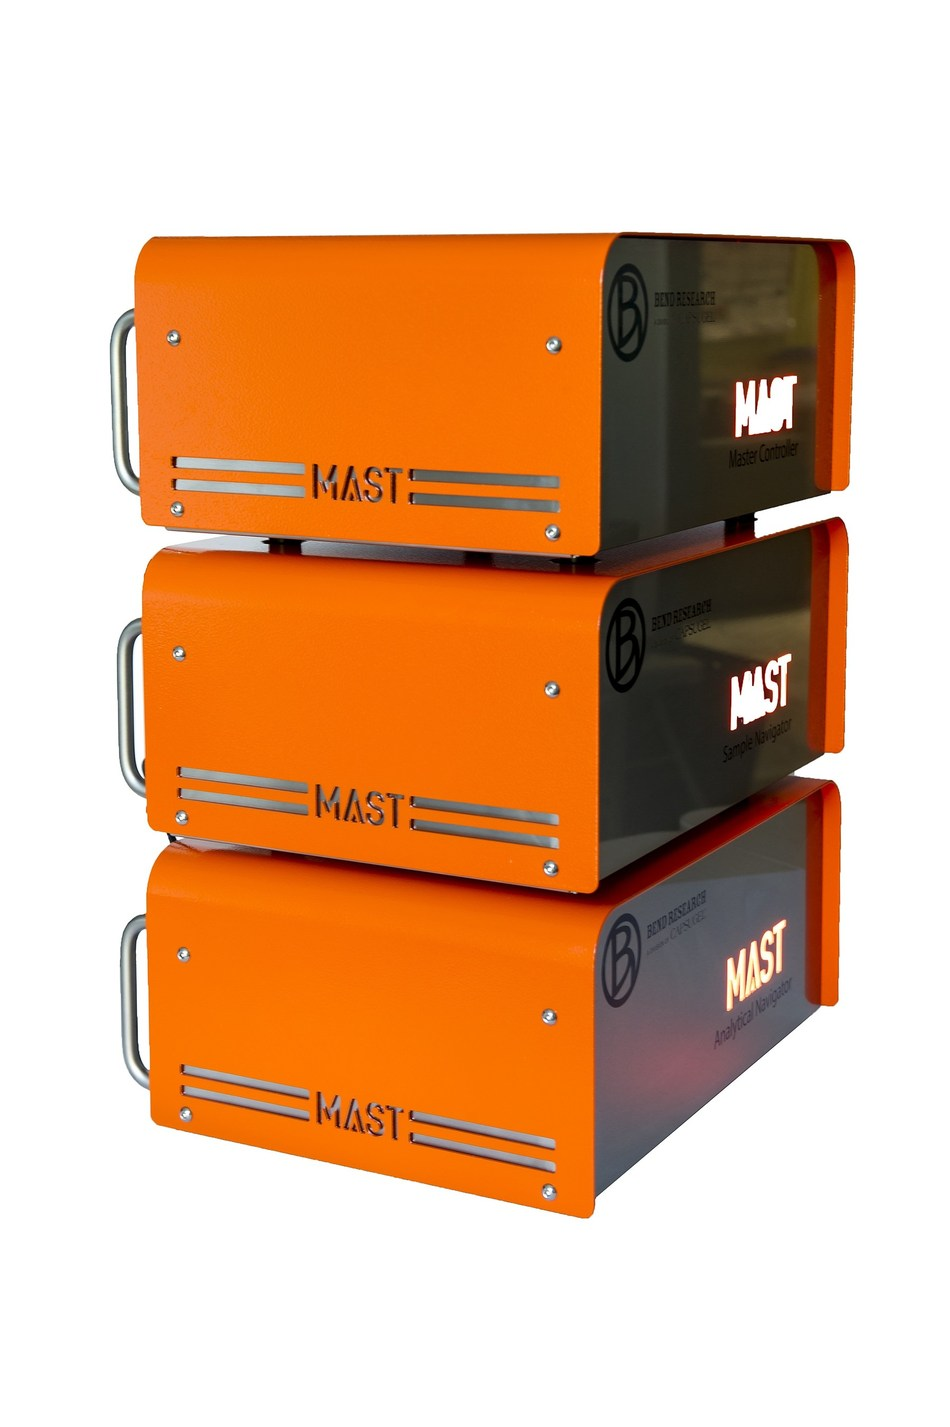 MAST is the latest innovation developed by Capsugel to address biopharmaceutical product development and processing challenges.